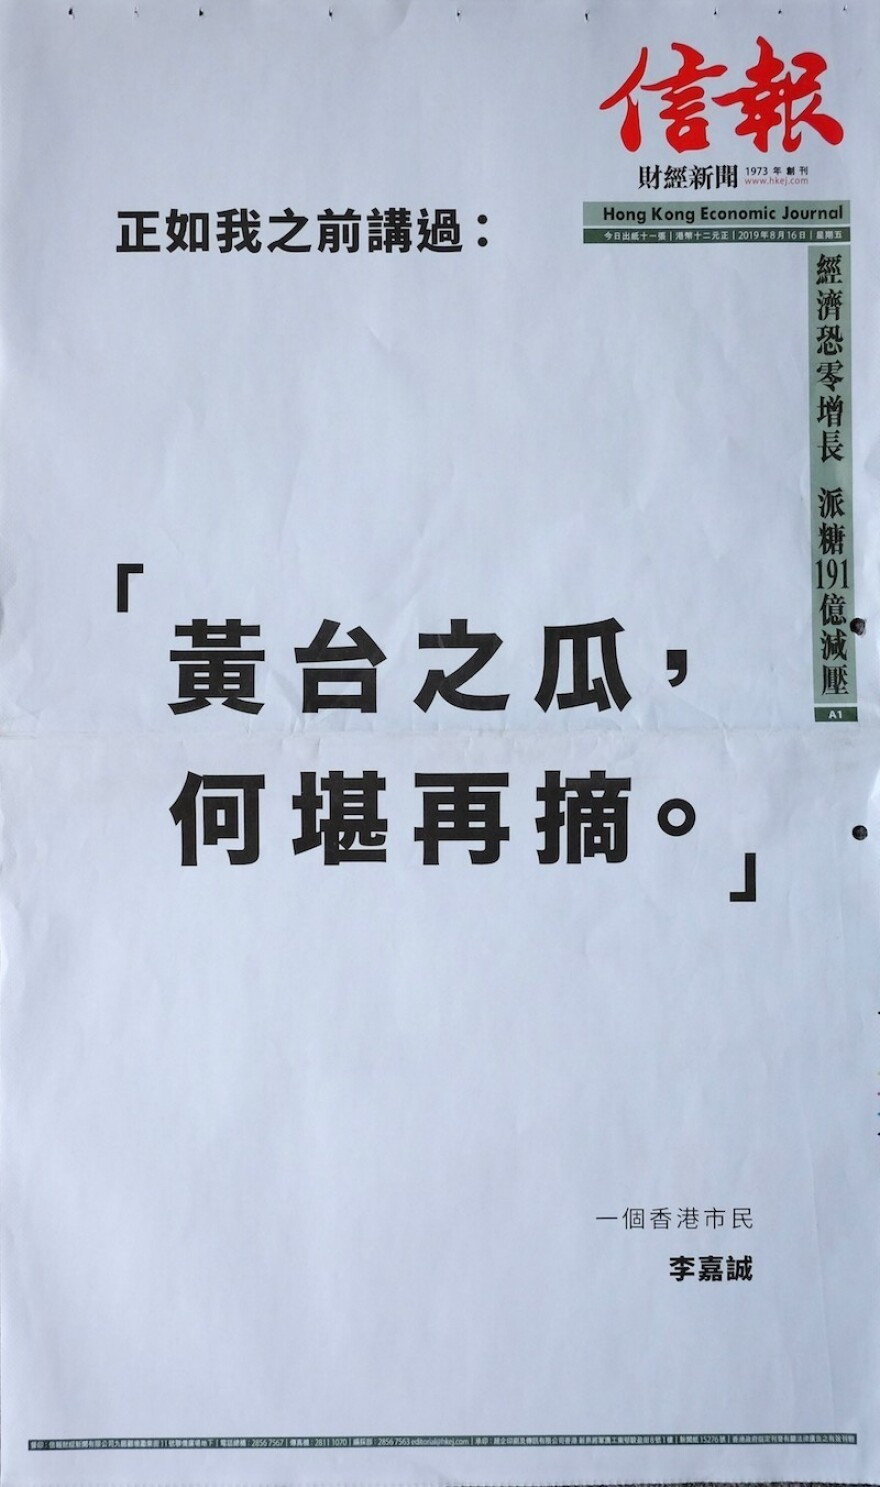 The central lines in this ad in the <em>Hong Kong Economic Journal </em>quote a centuries-old poem that may suggest a warning to Chinese leadership.